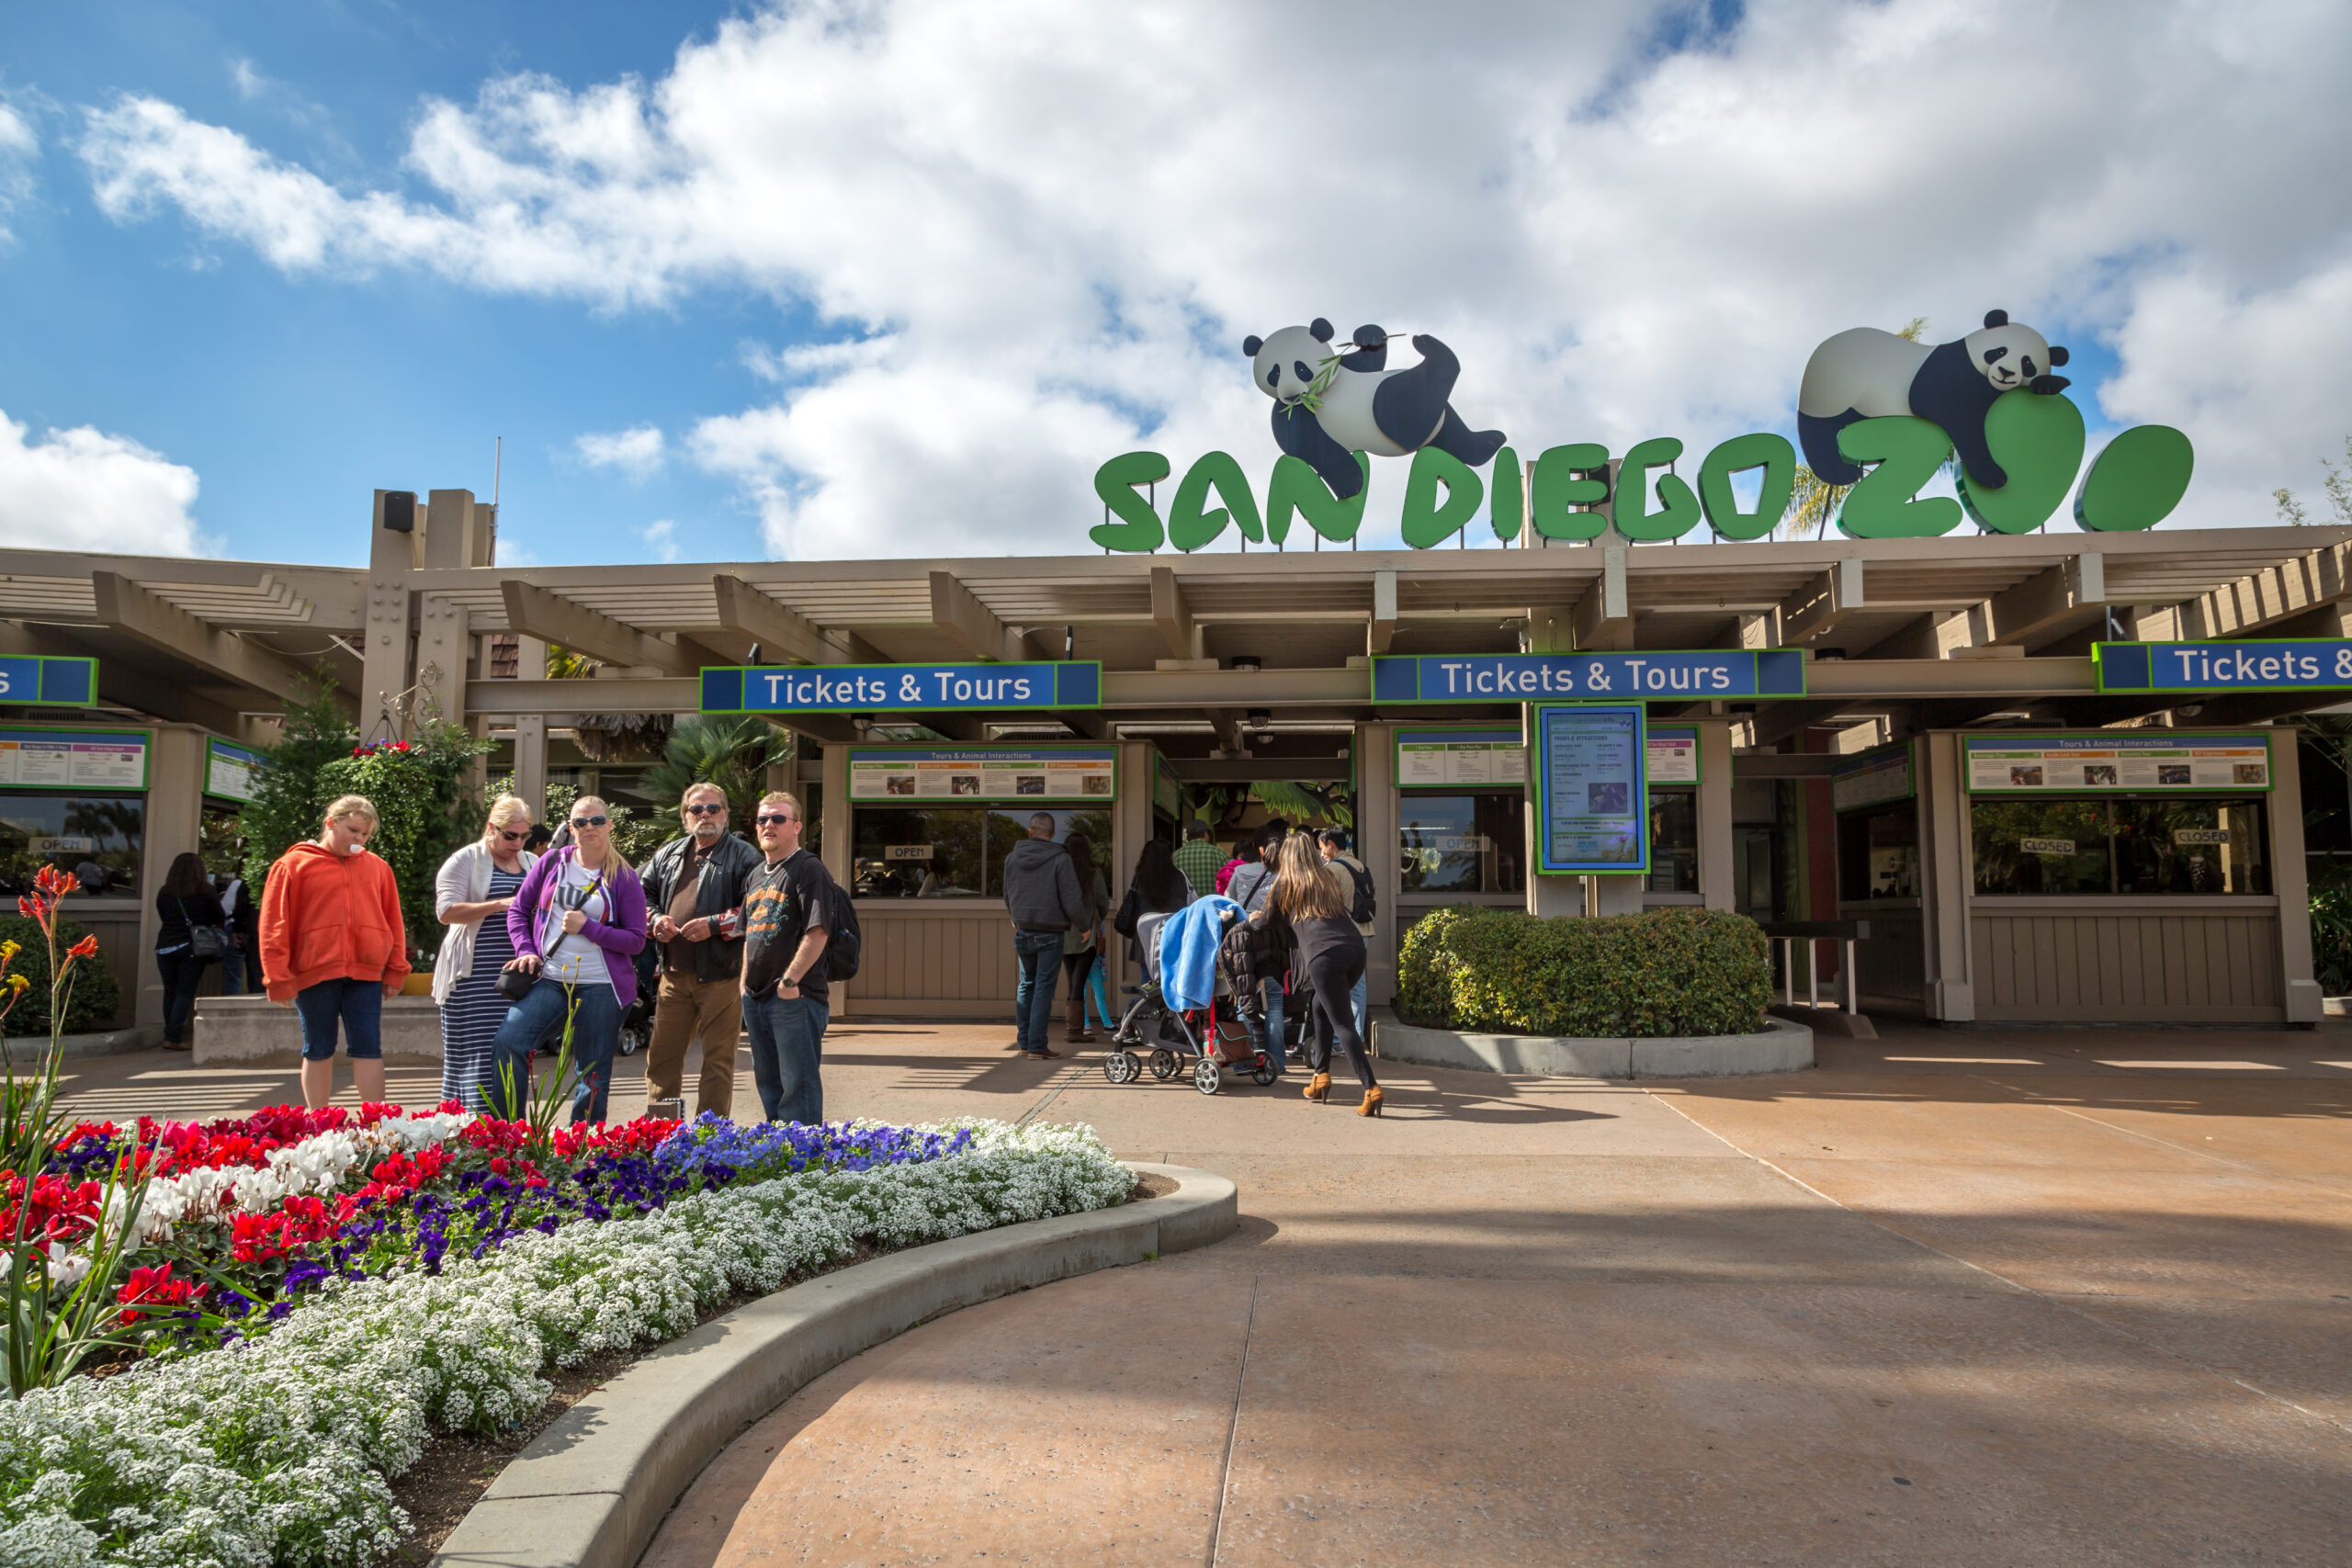 Tourists and locals just in front the main entrance of San Diego Zoo in California, USA.